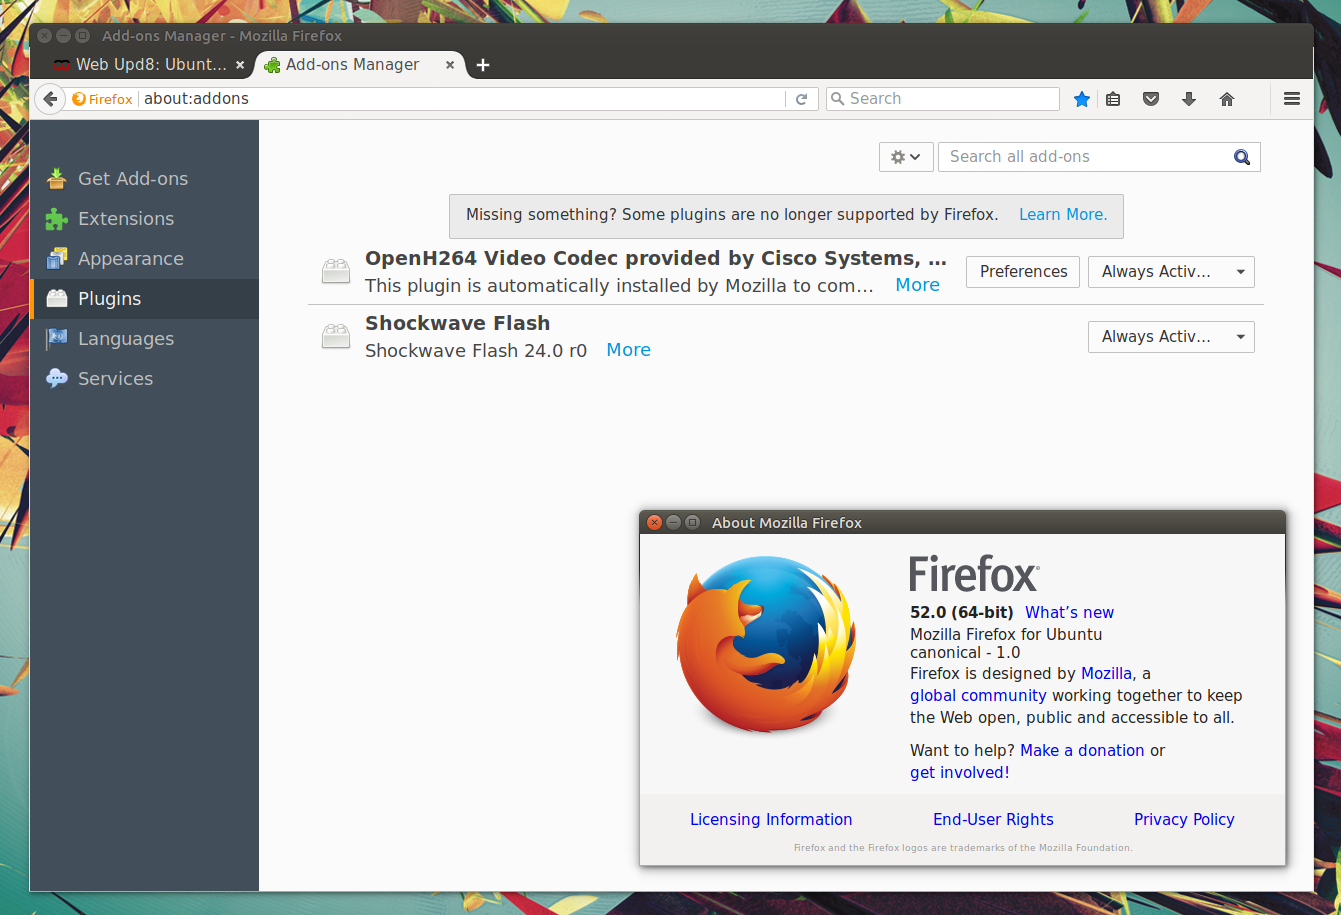 Java Plugin For Firefox Firefox 52 Released With Webassembly Support, Removes